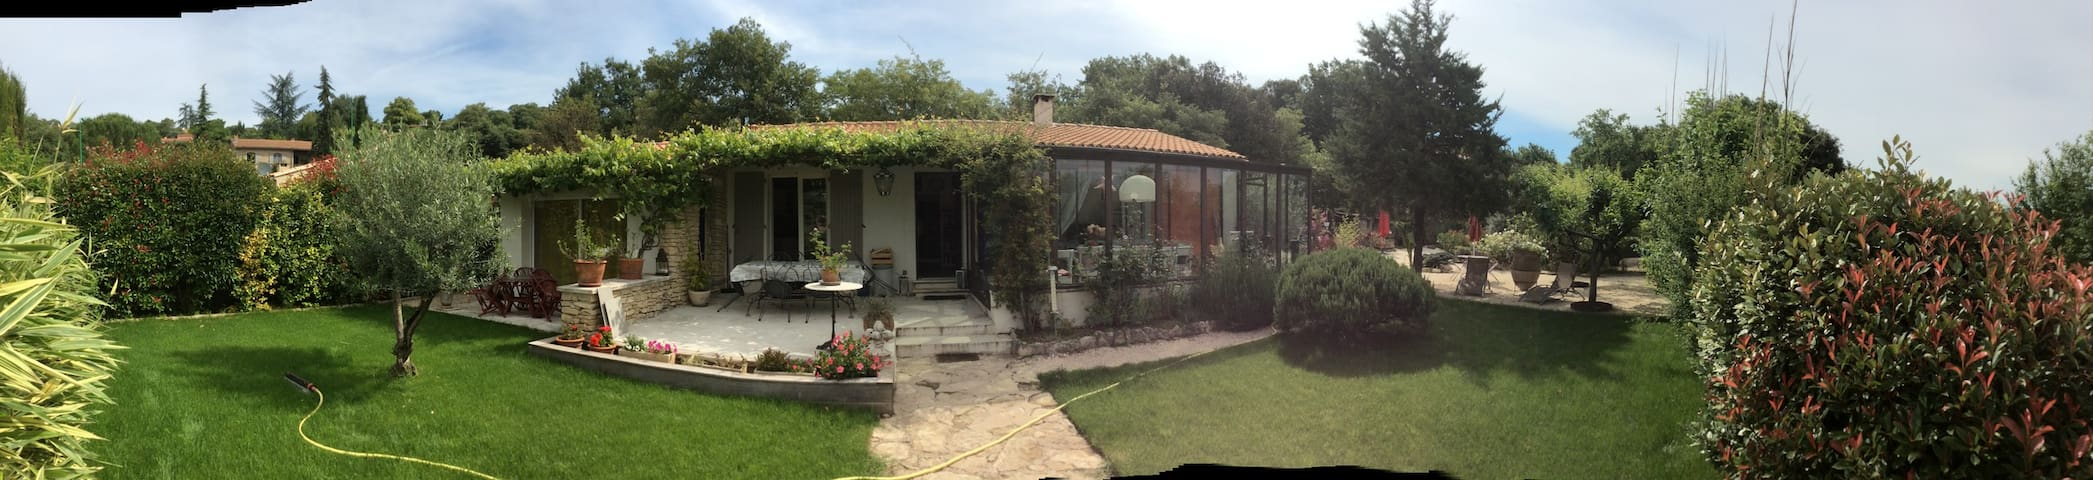 COSY HOUSE IN GOULT LUBERON